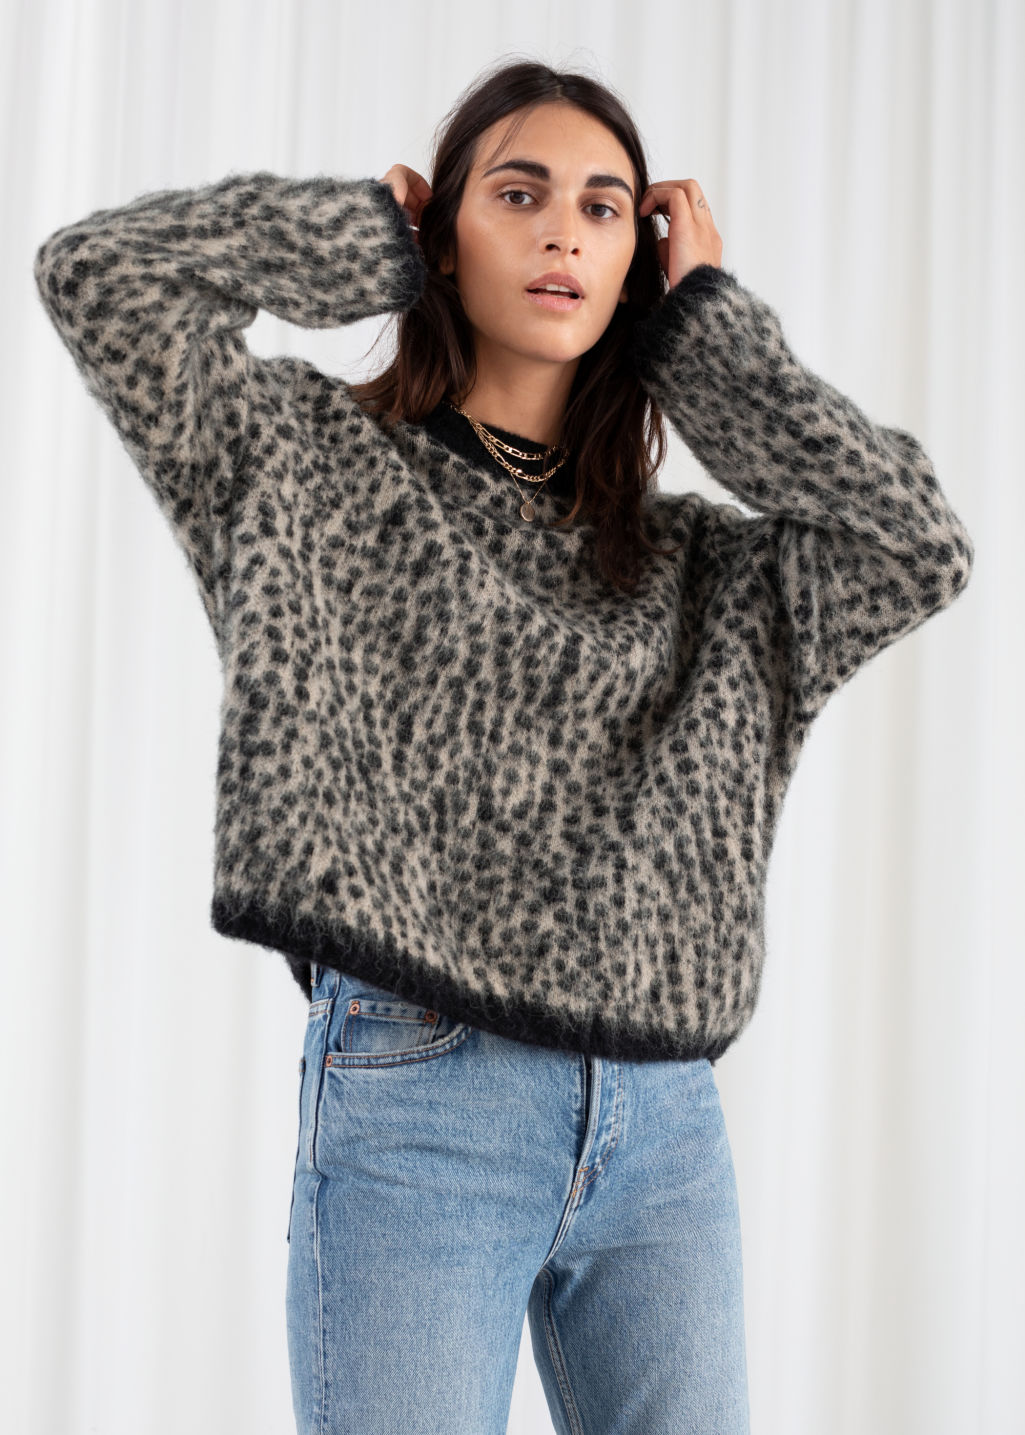 stable quality competitive price 2019 professional Leopard Knit Sweater - Grey Leopard - Patterned sweaters - & Other Stories